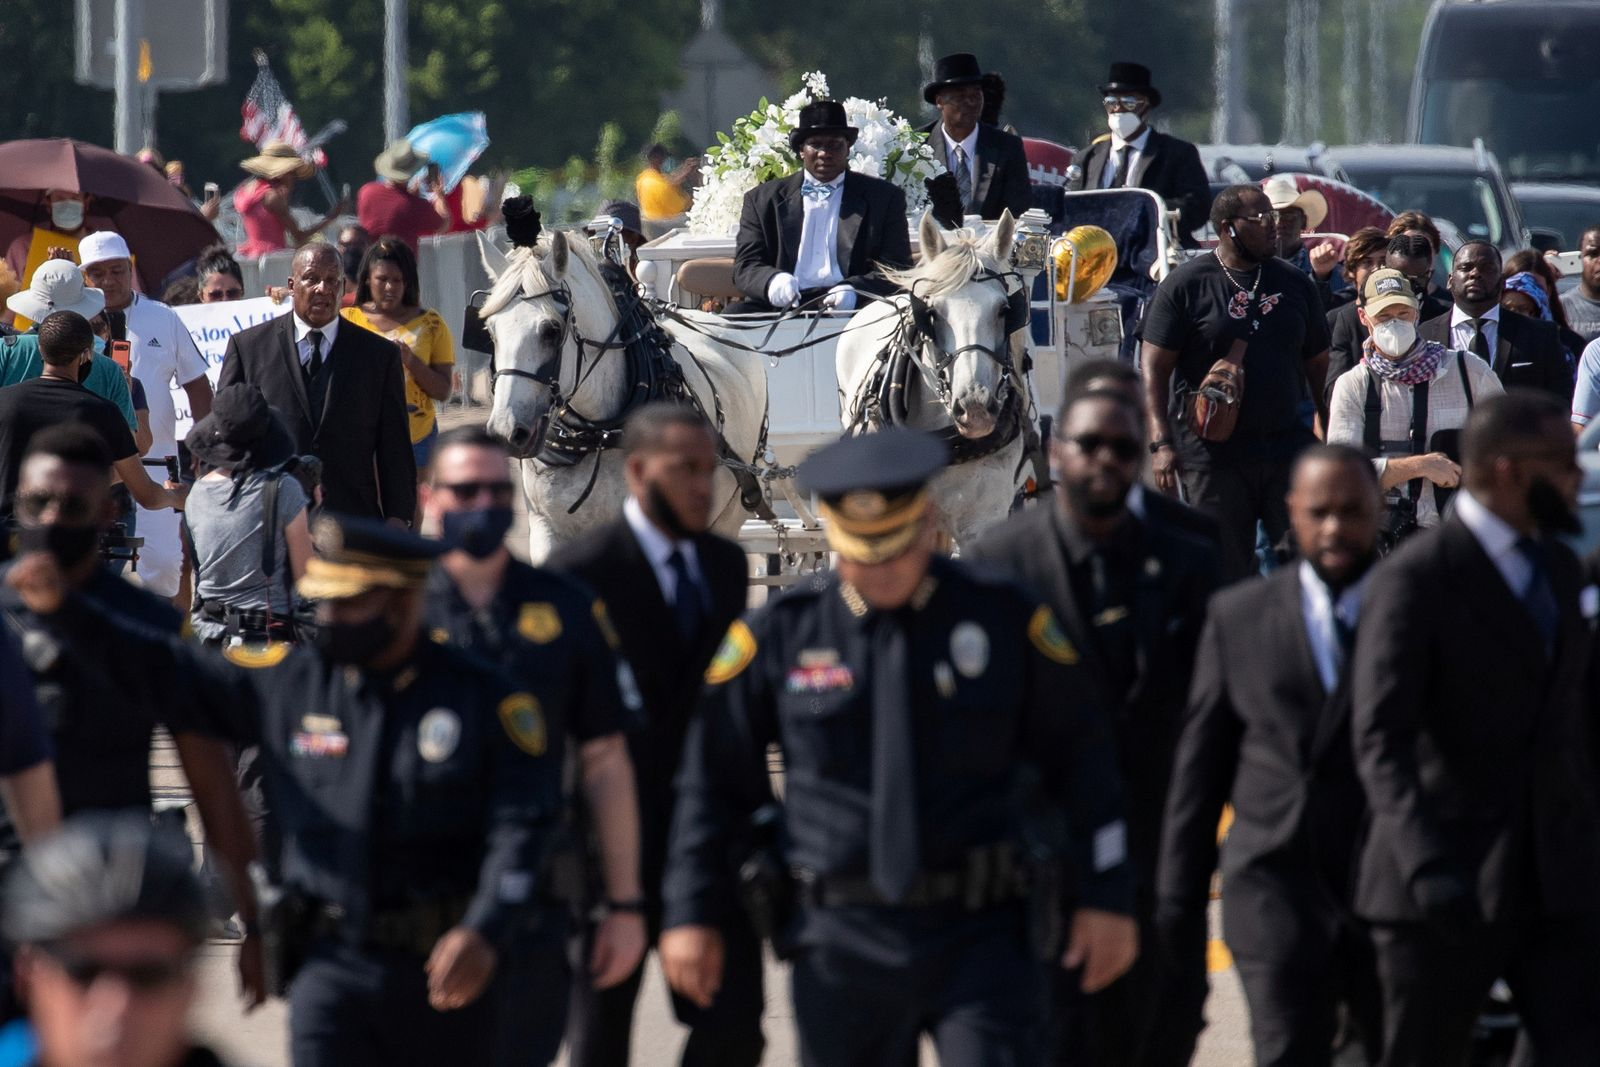 Officers lead the horse drawn carriage with coffin of George Floyd as it enters cemetery ahead of burial in Pearland, Texas